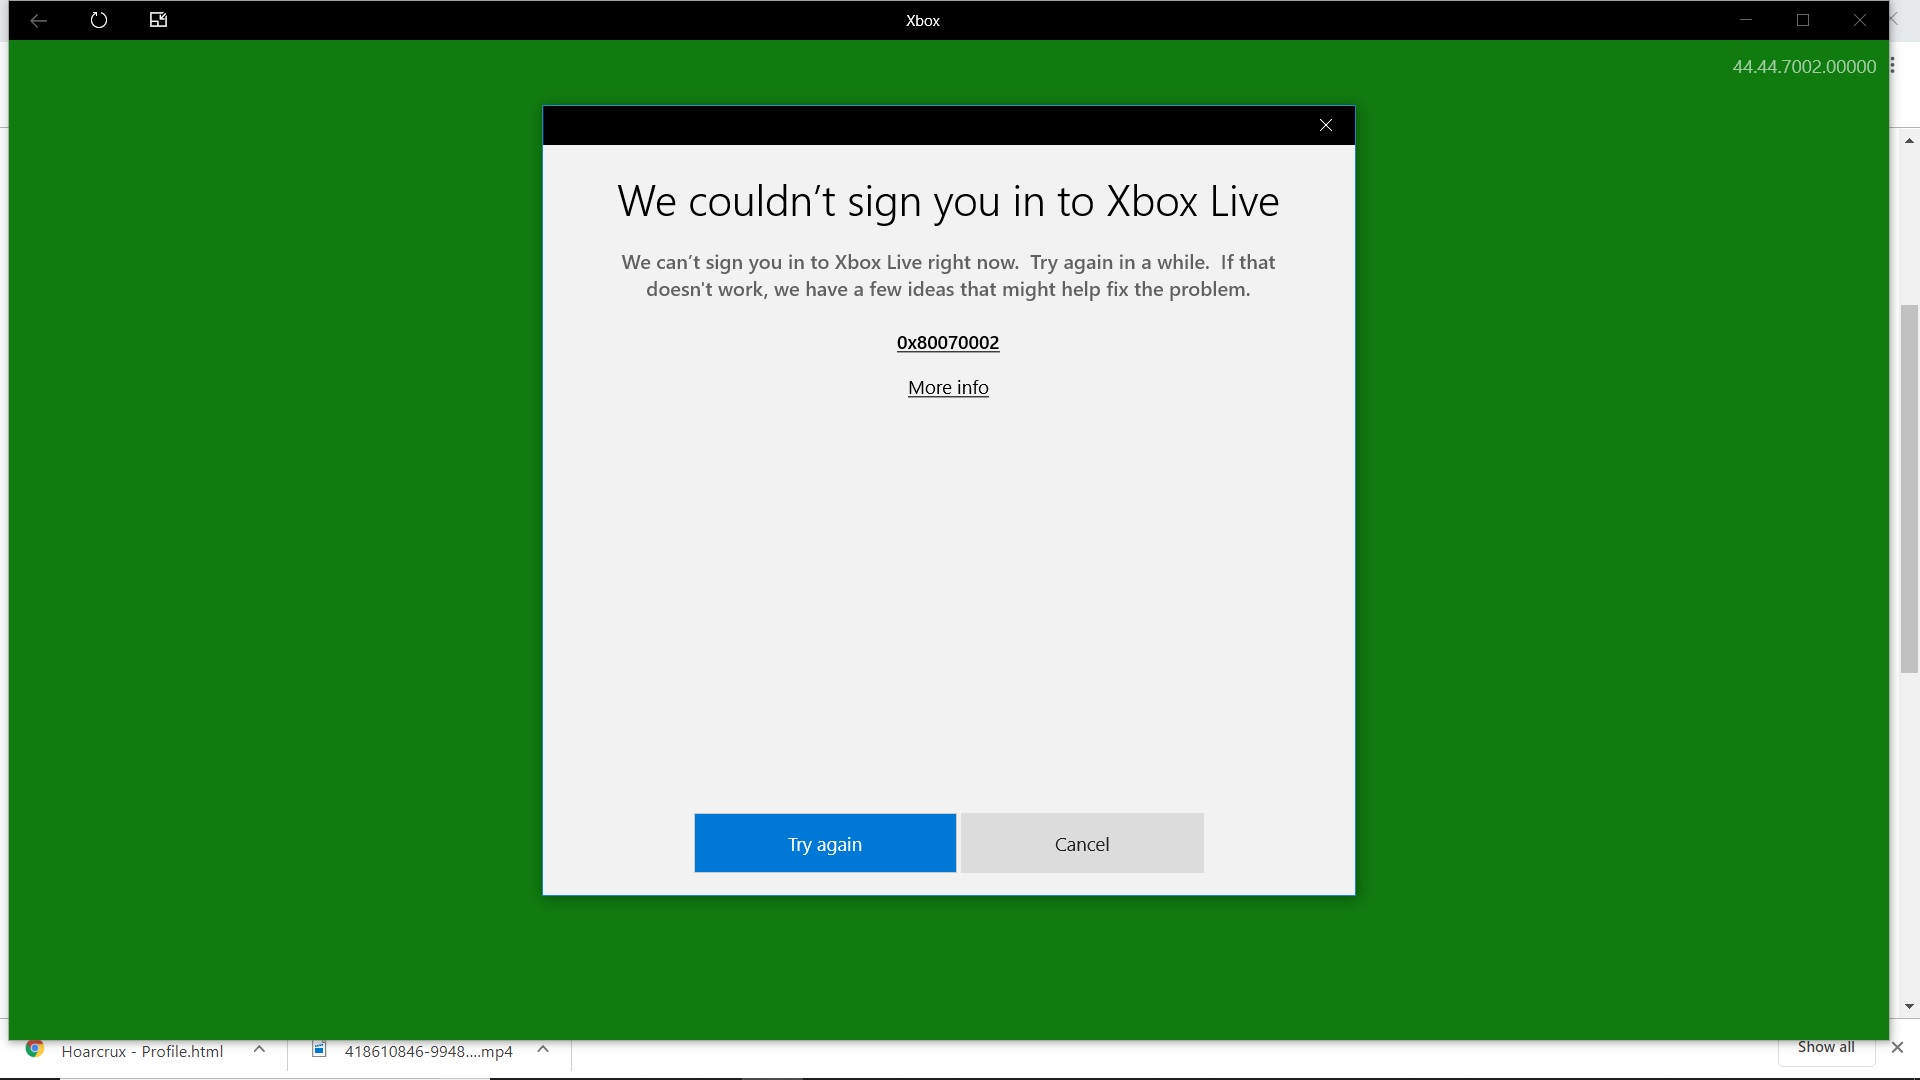 Xbox App Crash/Error Code when trying to sign in - Microsoft